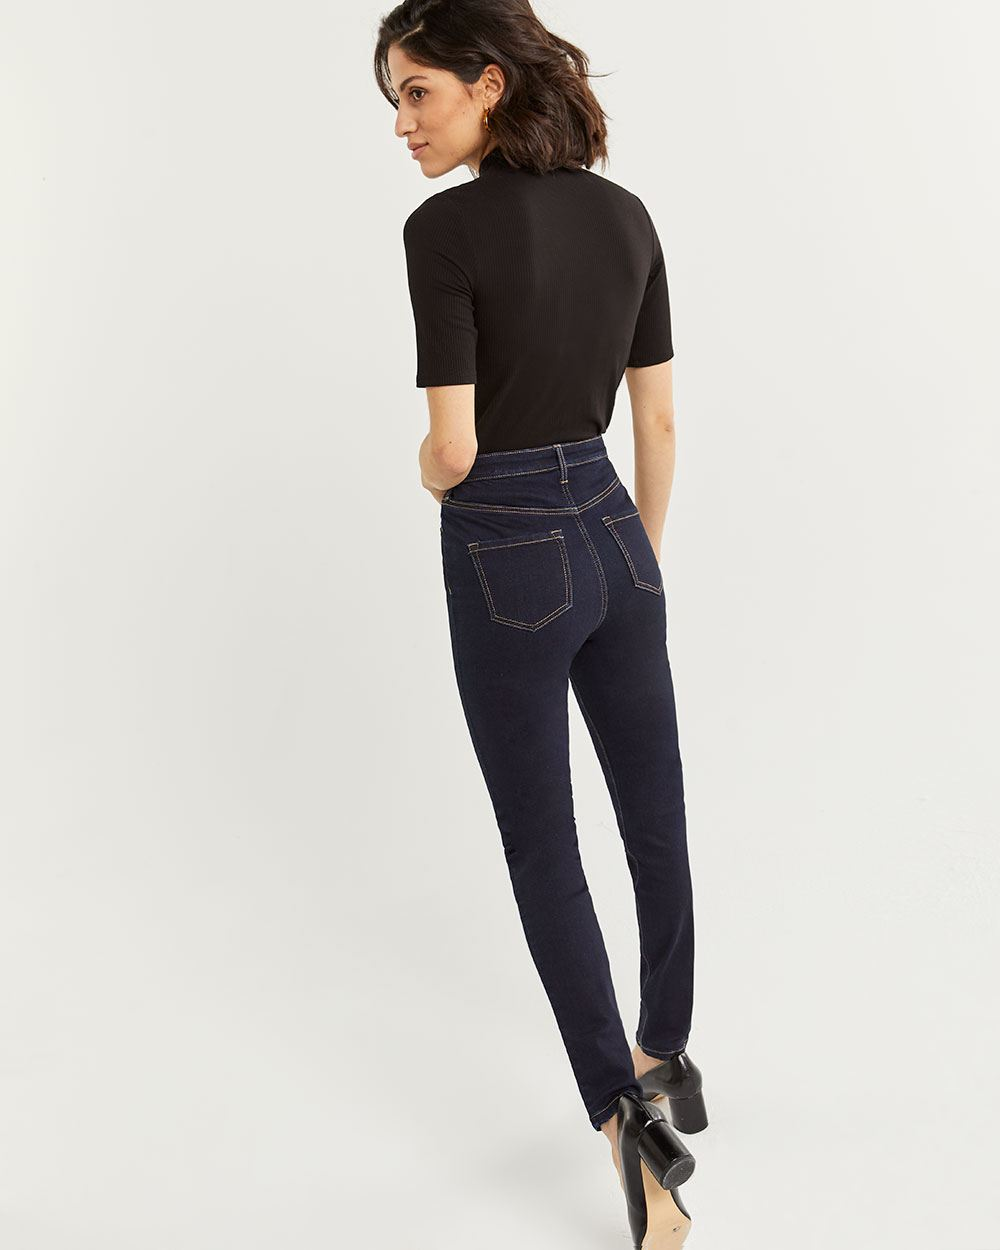 5-Button High Rise Skinny Jeans